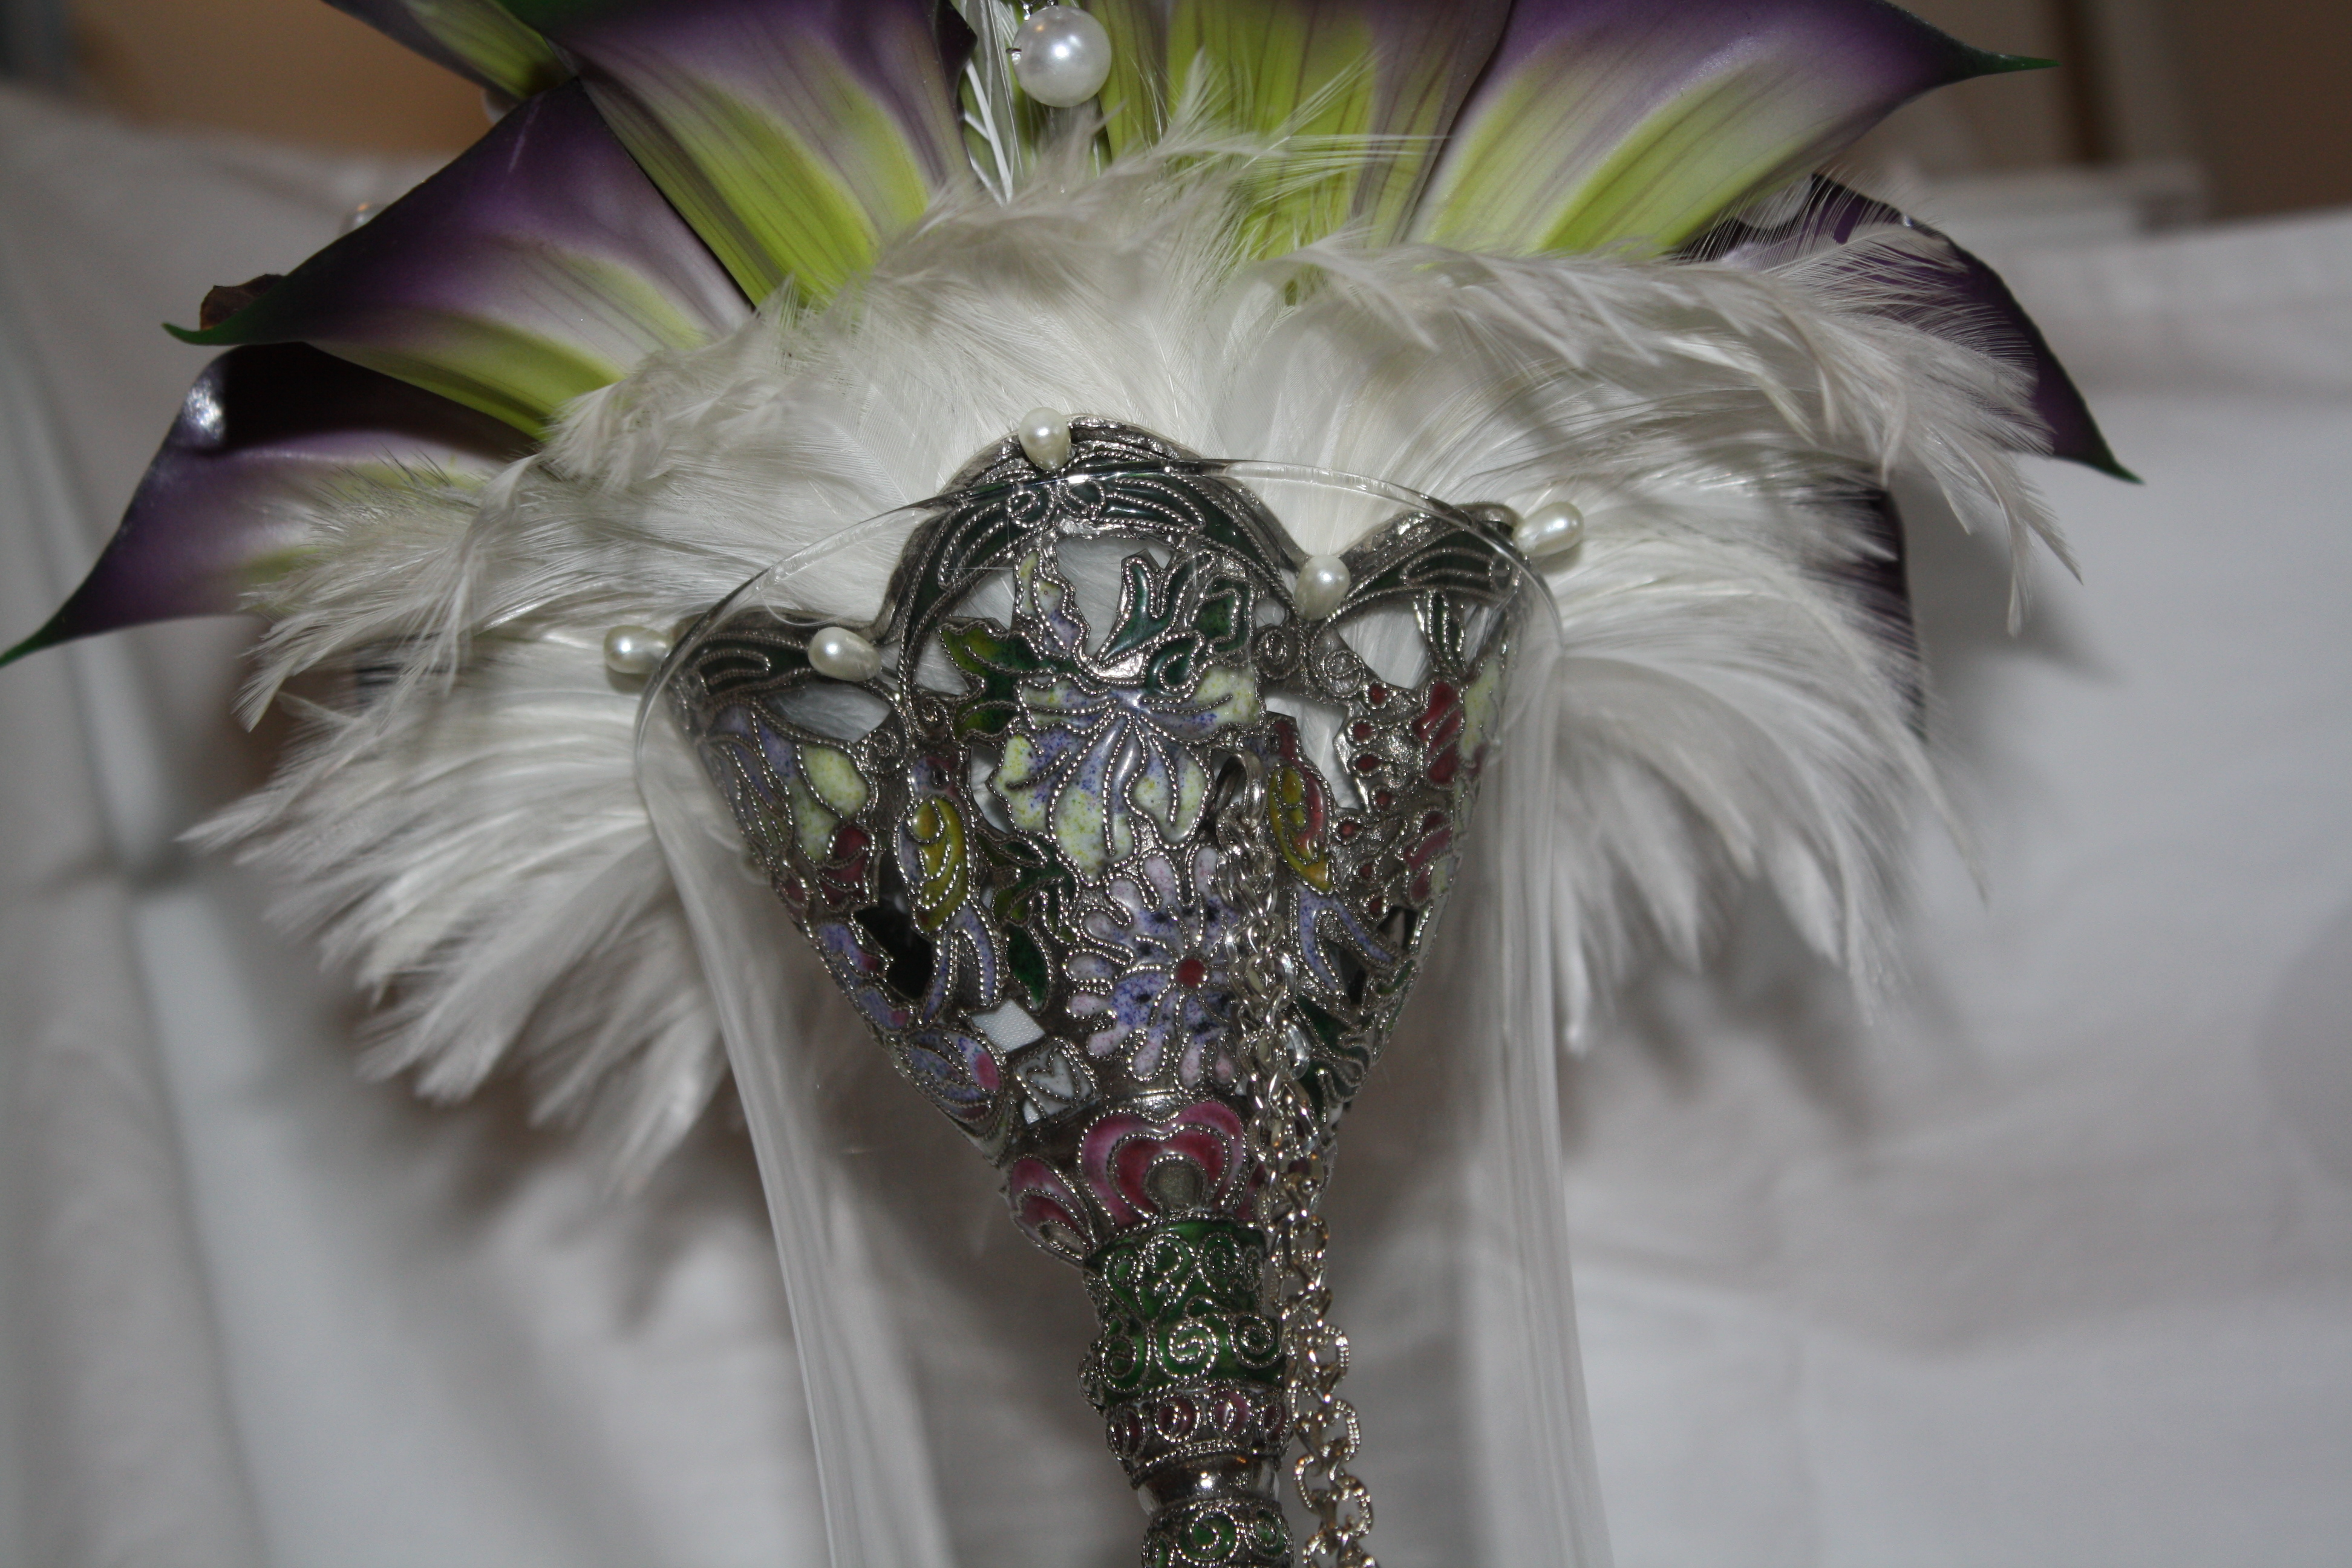 Beauty, Flowers & Decor, white, purple, silver, Feathers, Bride Bouquets, Flowers, Bouquet, Peacock, Holder, Feather